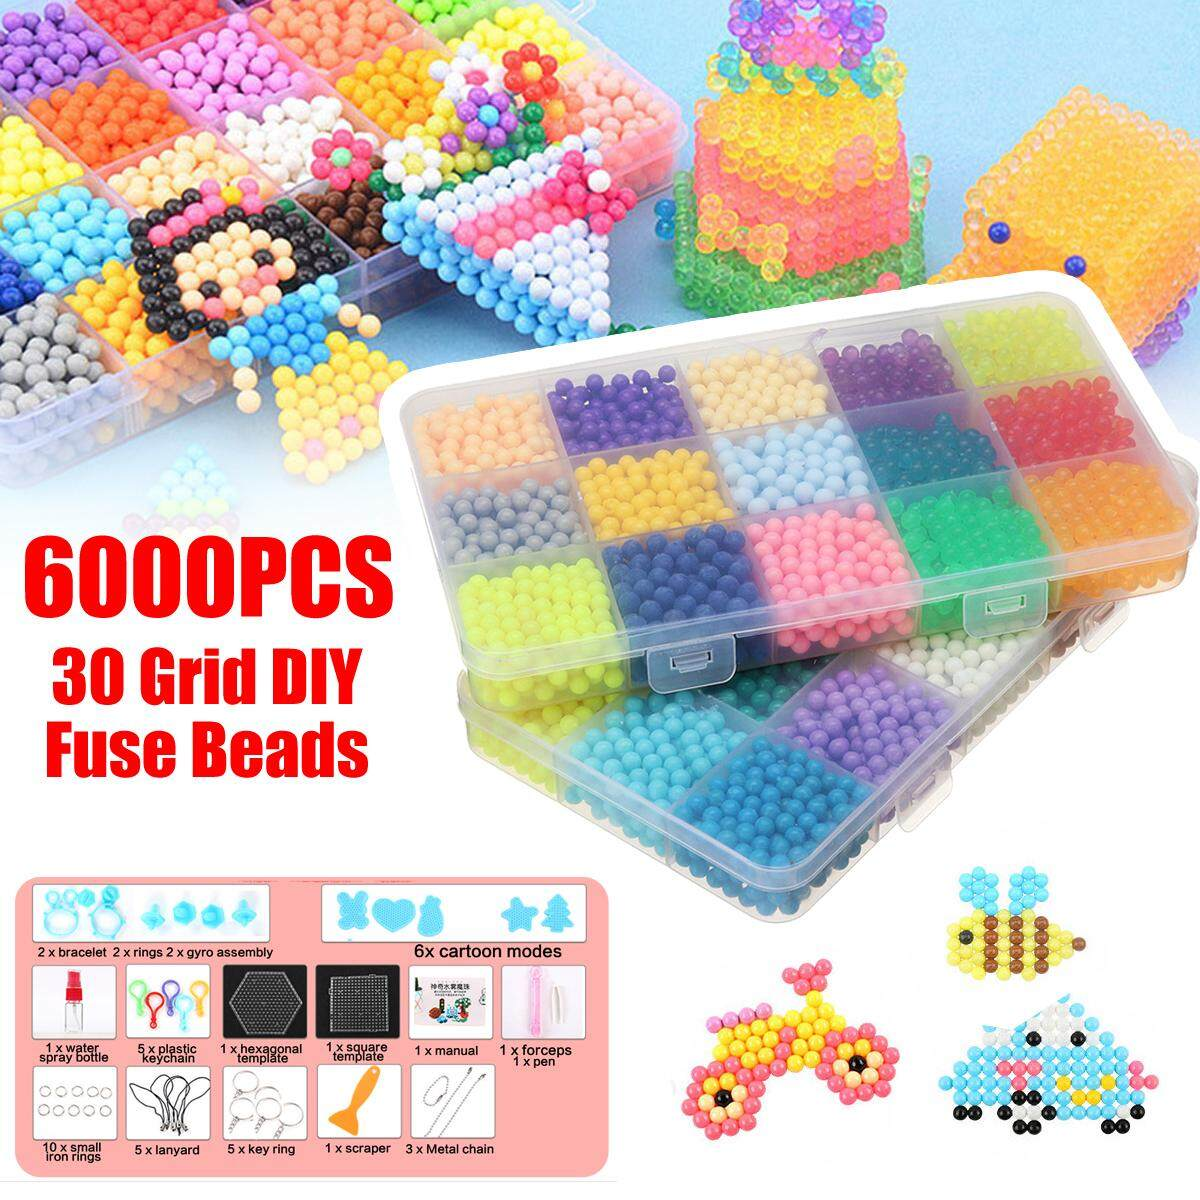 6000pcs Aqua Refill Water Bead Diy Sticky Fuse Beads Puzzle Art Craft Toys By Glimmer.